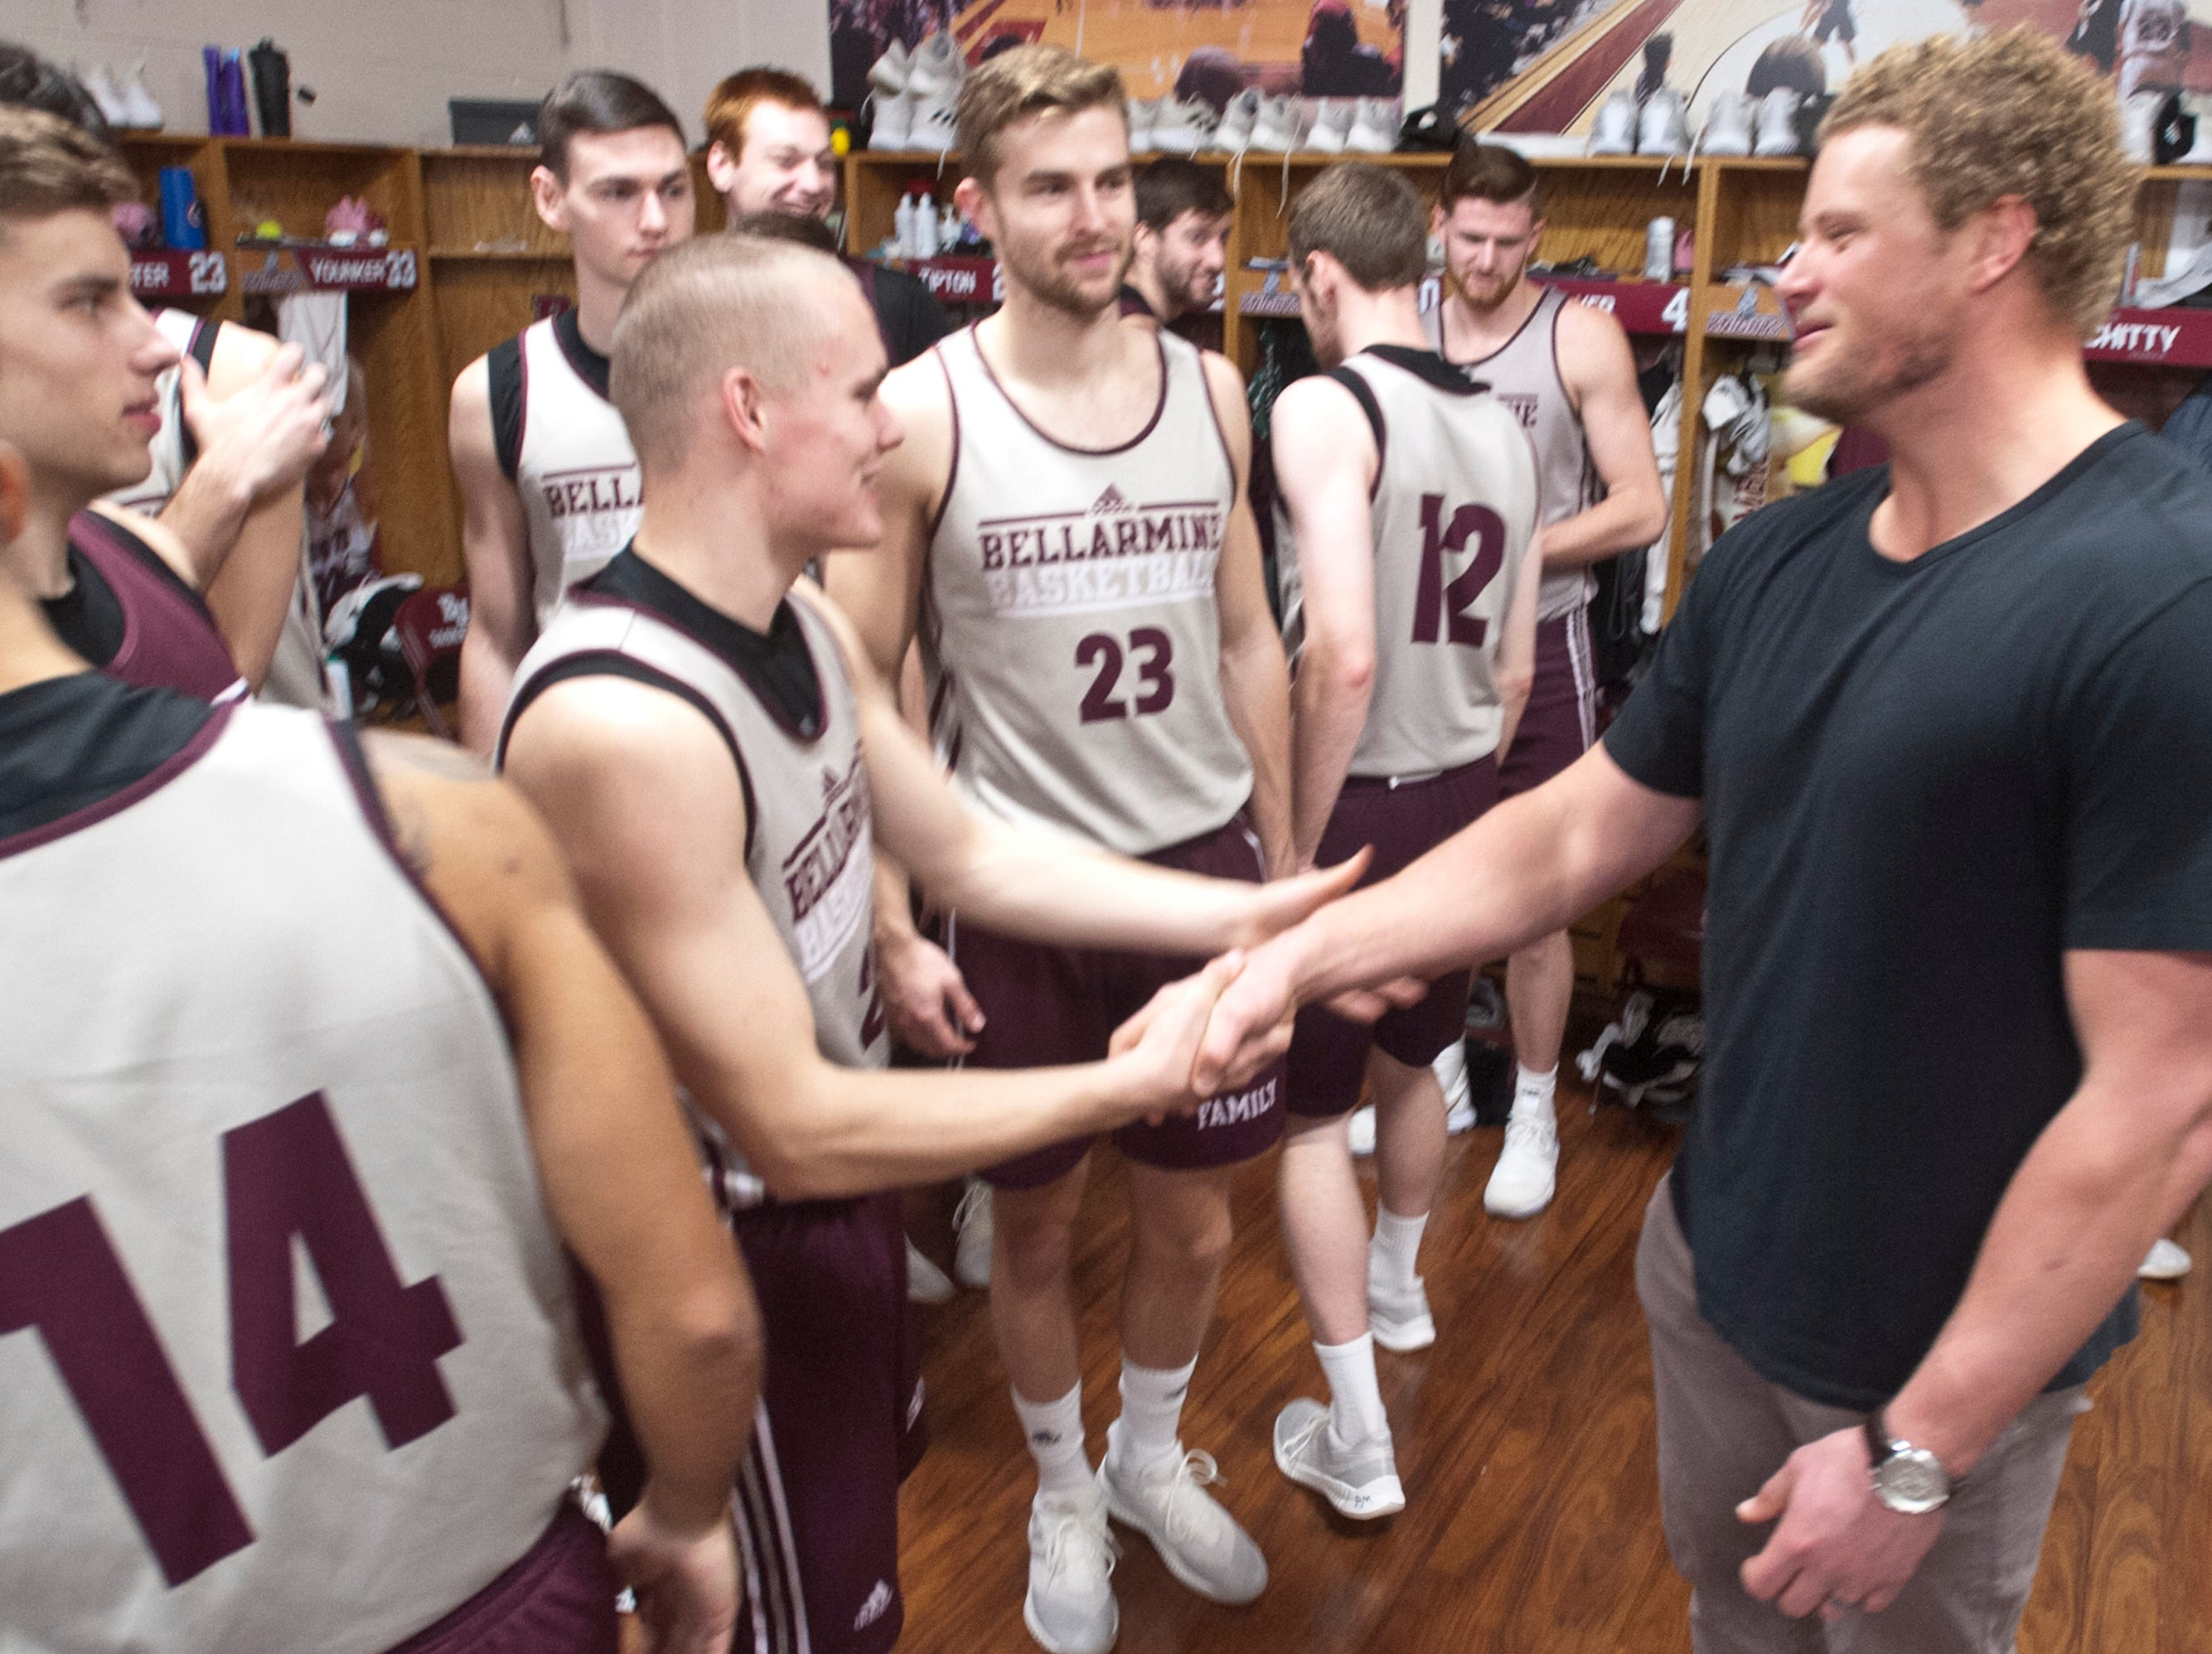 Former Buffalo Bills center and University of Louisville football player Eric Wood takes his turn shaking hands with Bellarmine guard C.J. Fleming in the locker room aftr Wood gave the basketball team an inspiring talk following the team's afternoon practice.18 December 2018